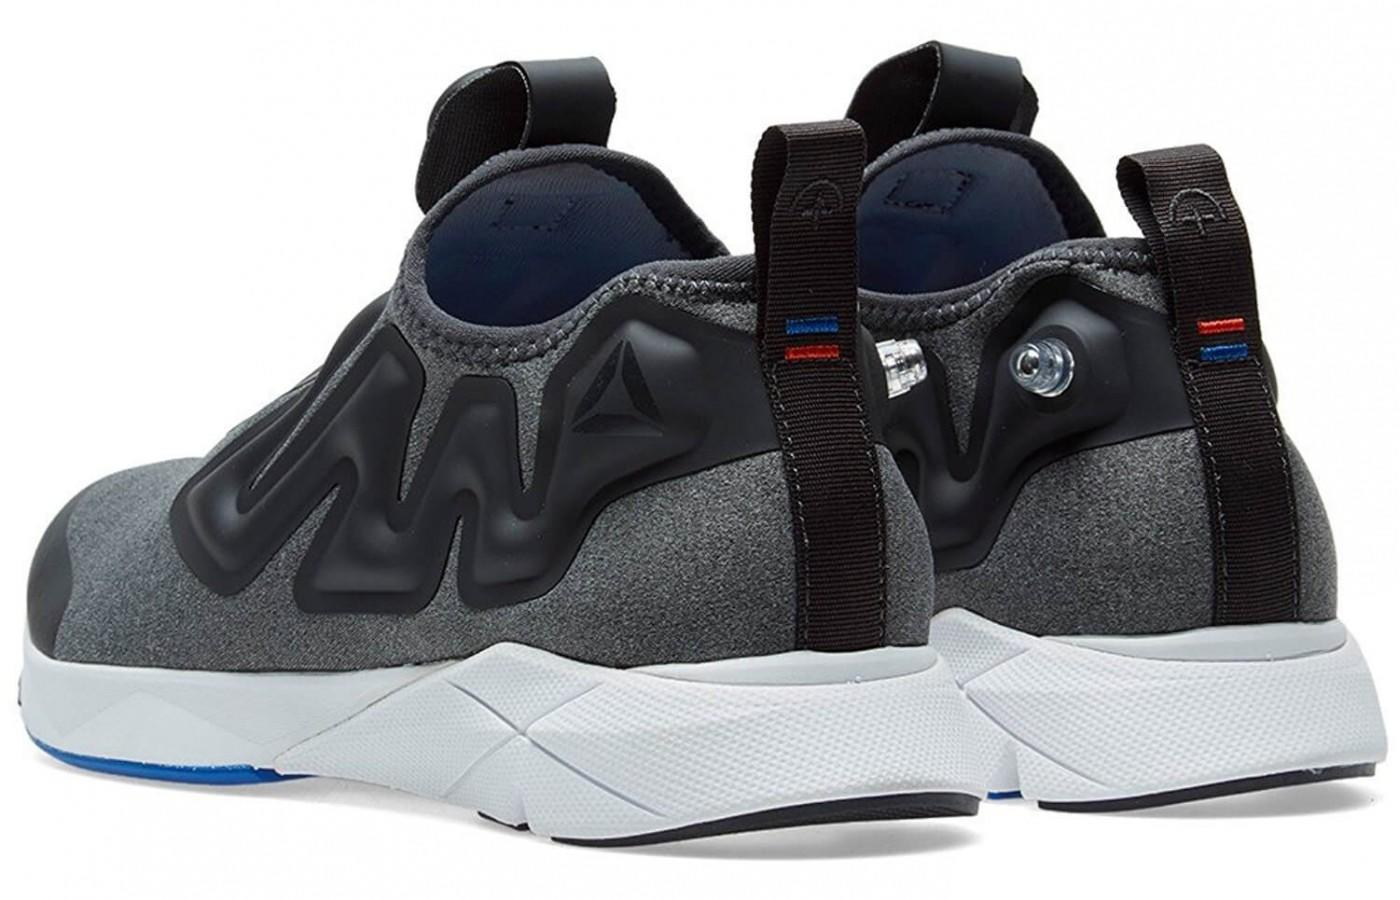 Reebok Pump Supreme Hoodie is not meant for intense workouts